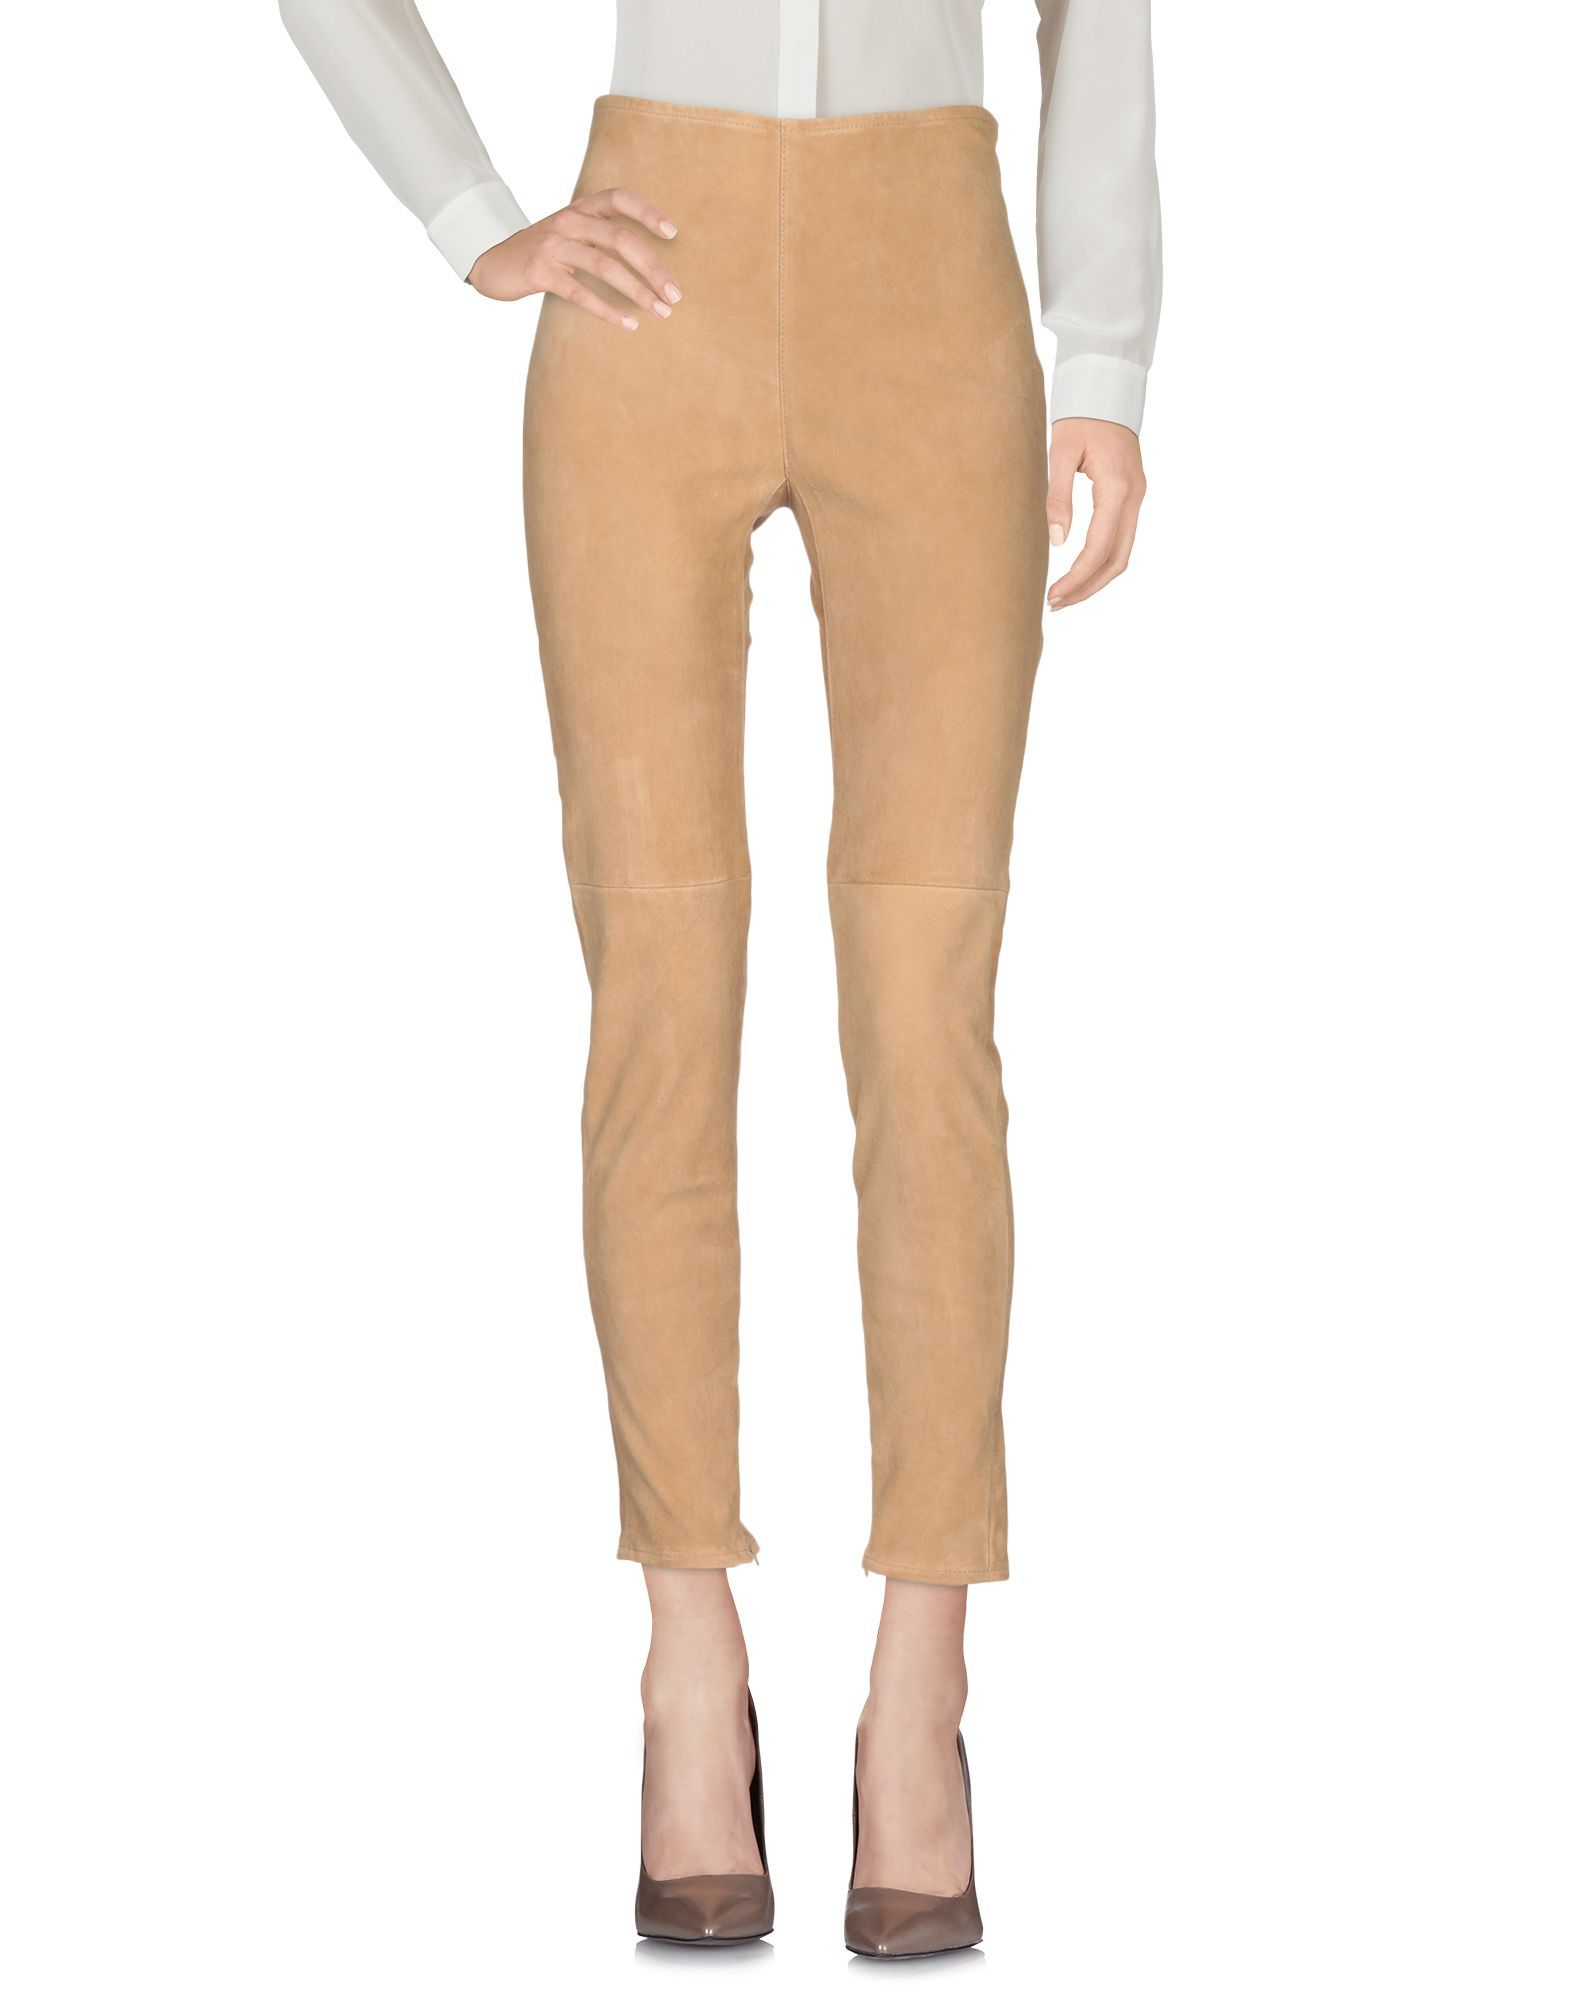 TROUSERS Liviana Conti Sand Woman Leather